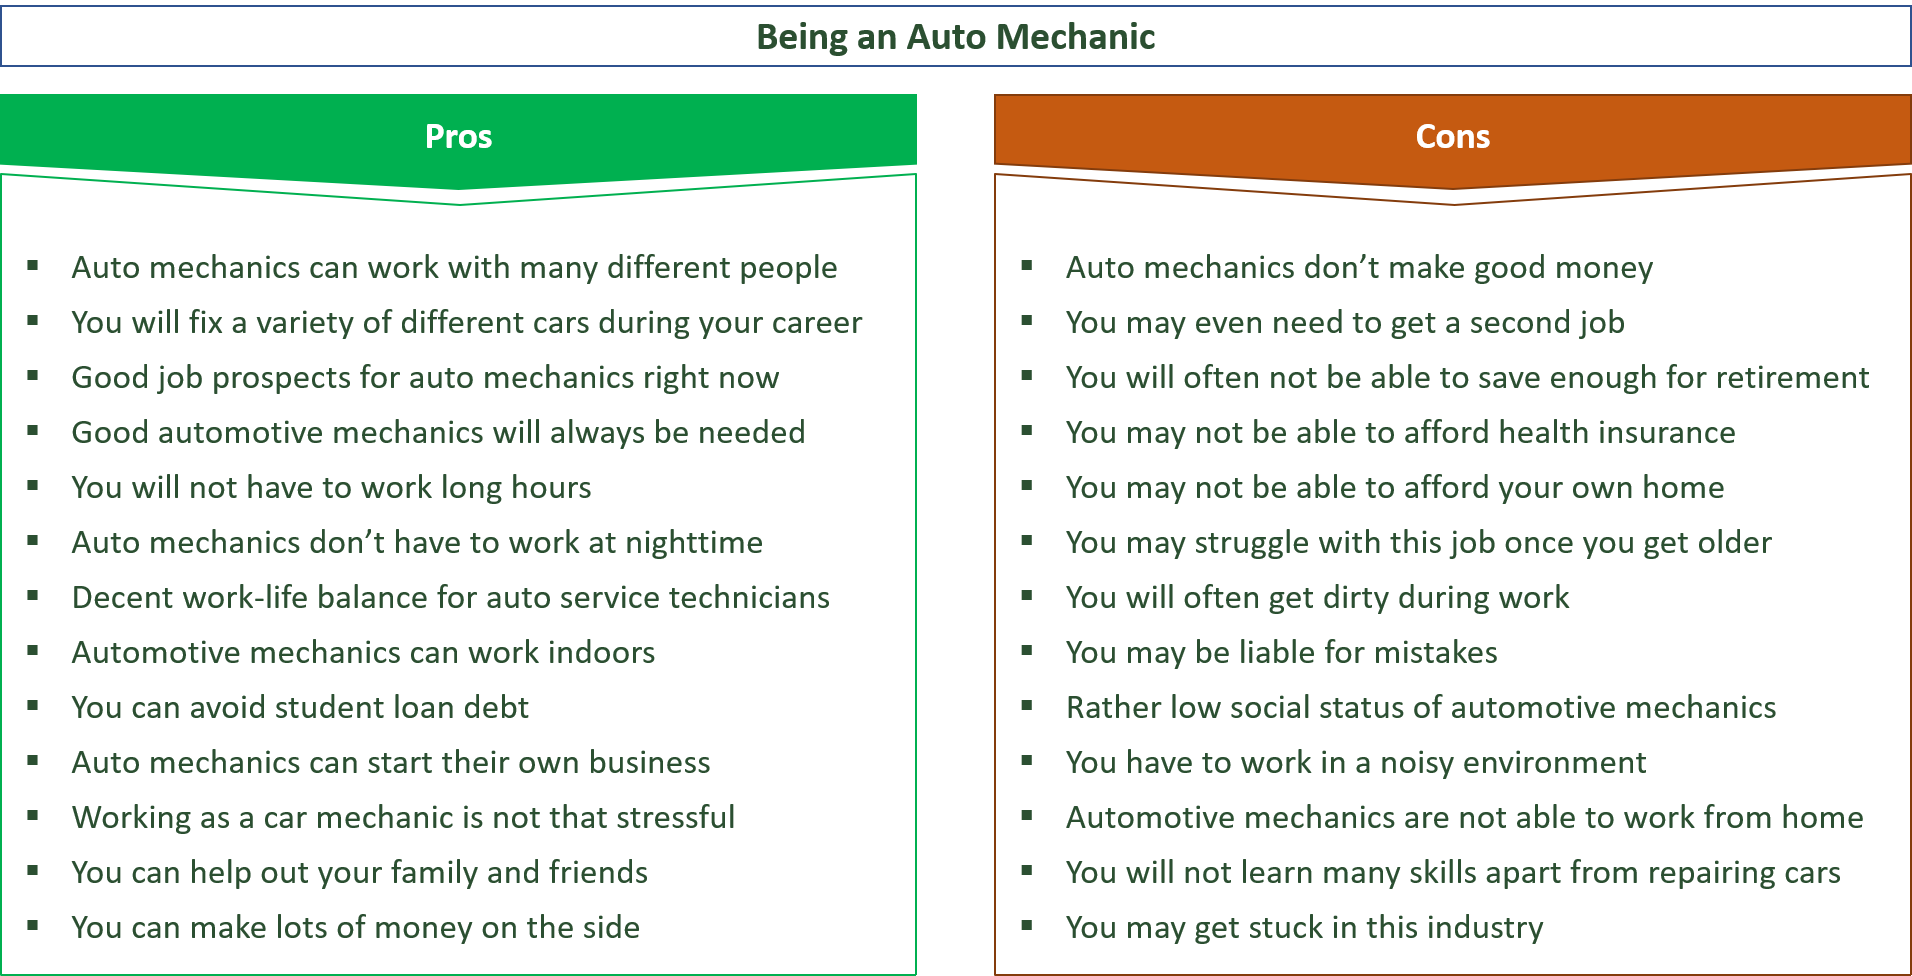 advantages and disadvantages of being an auto mechanic